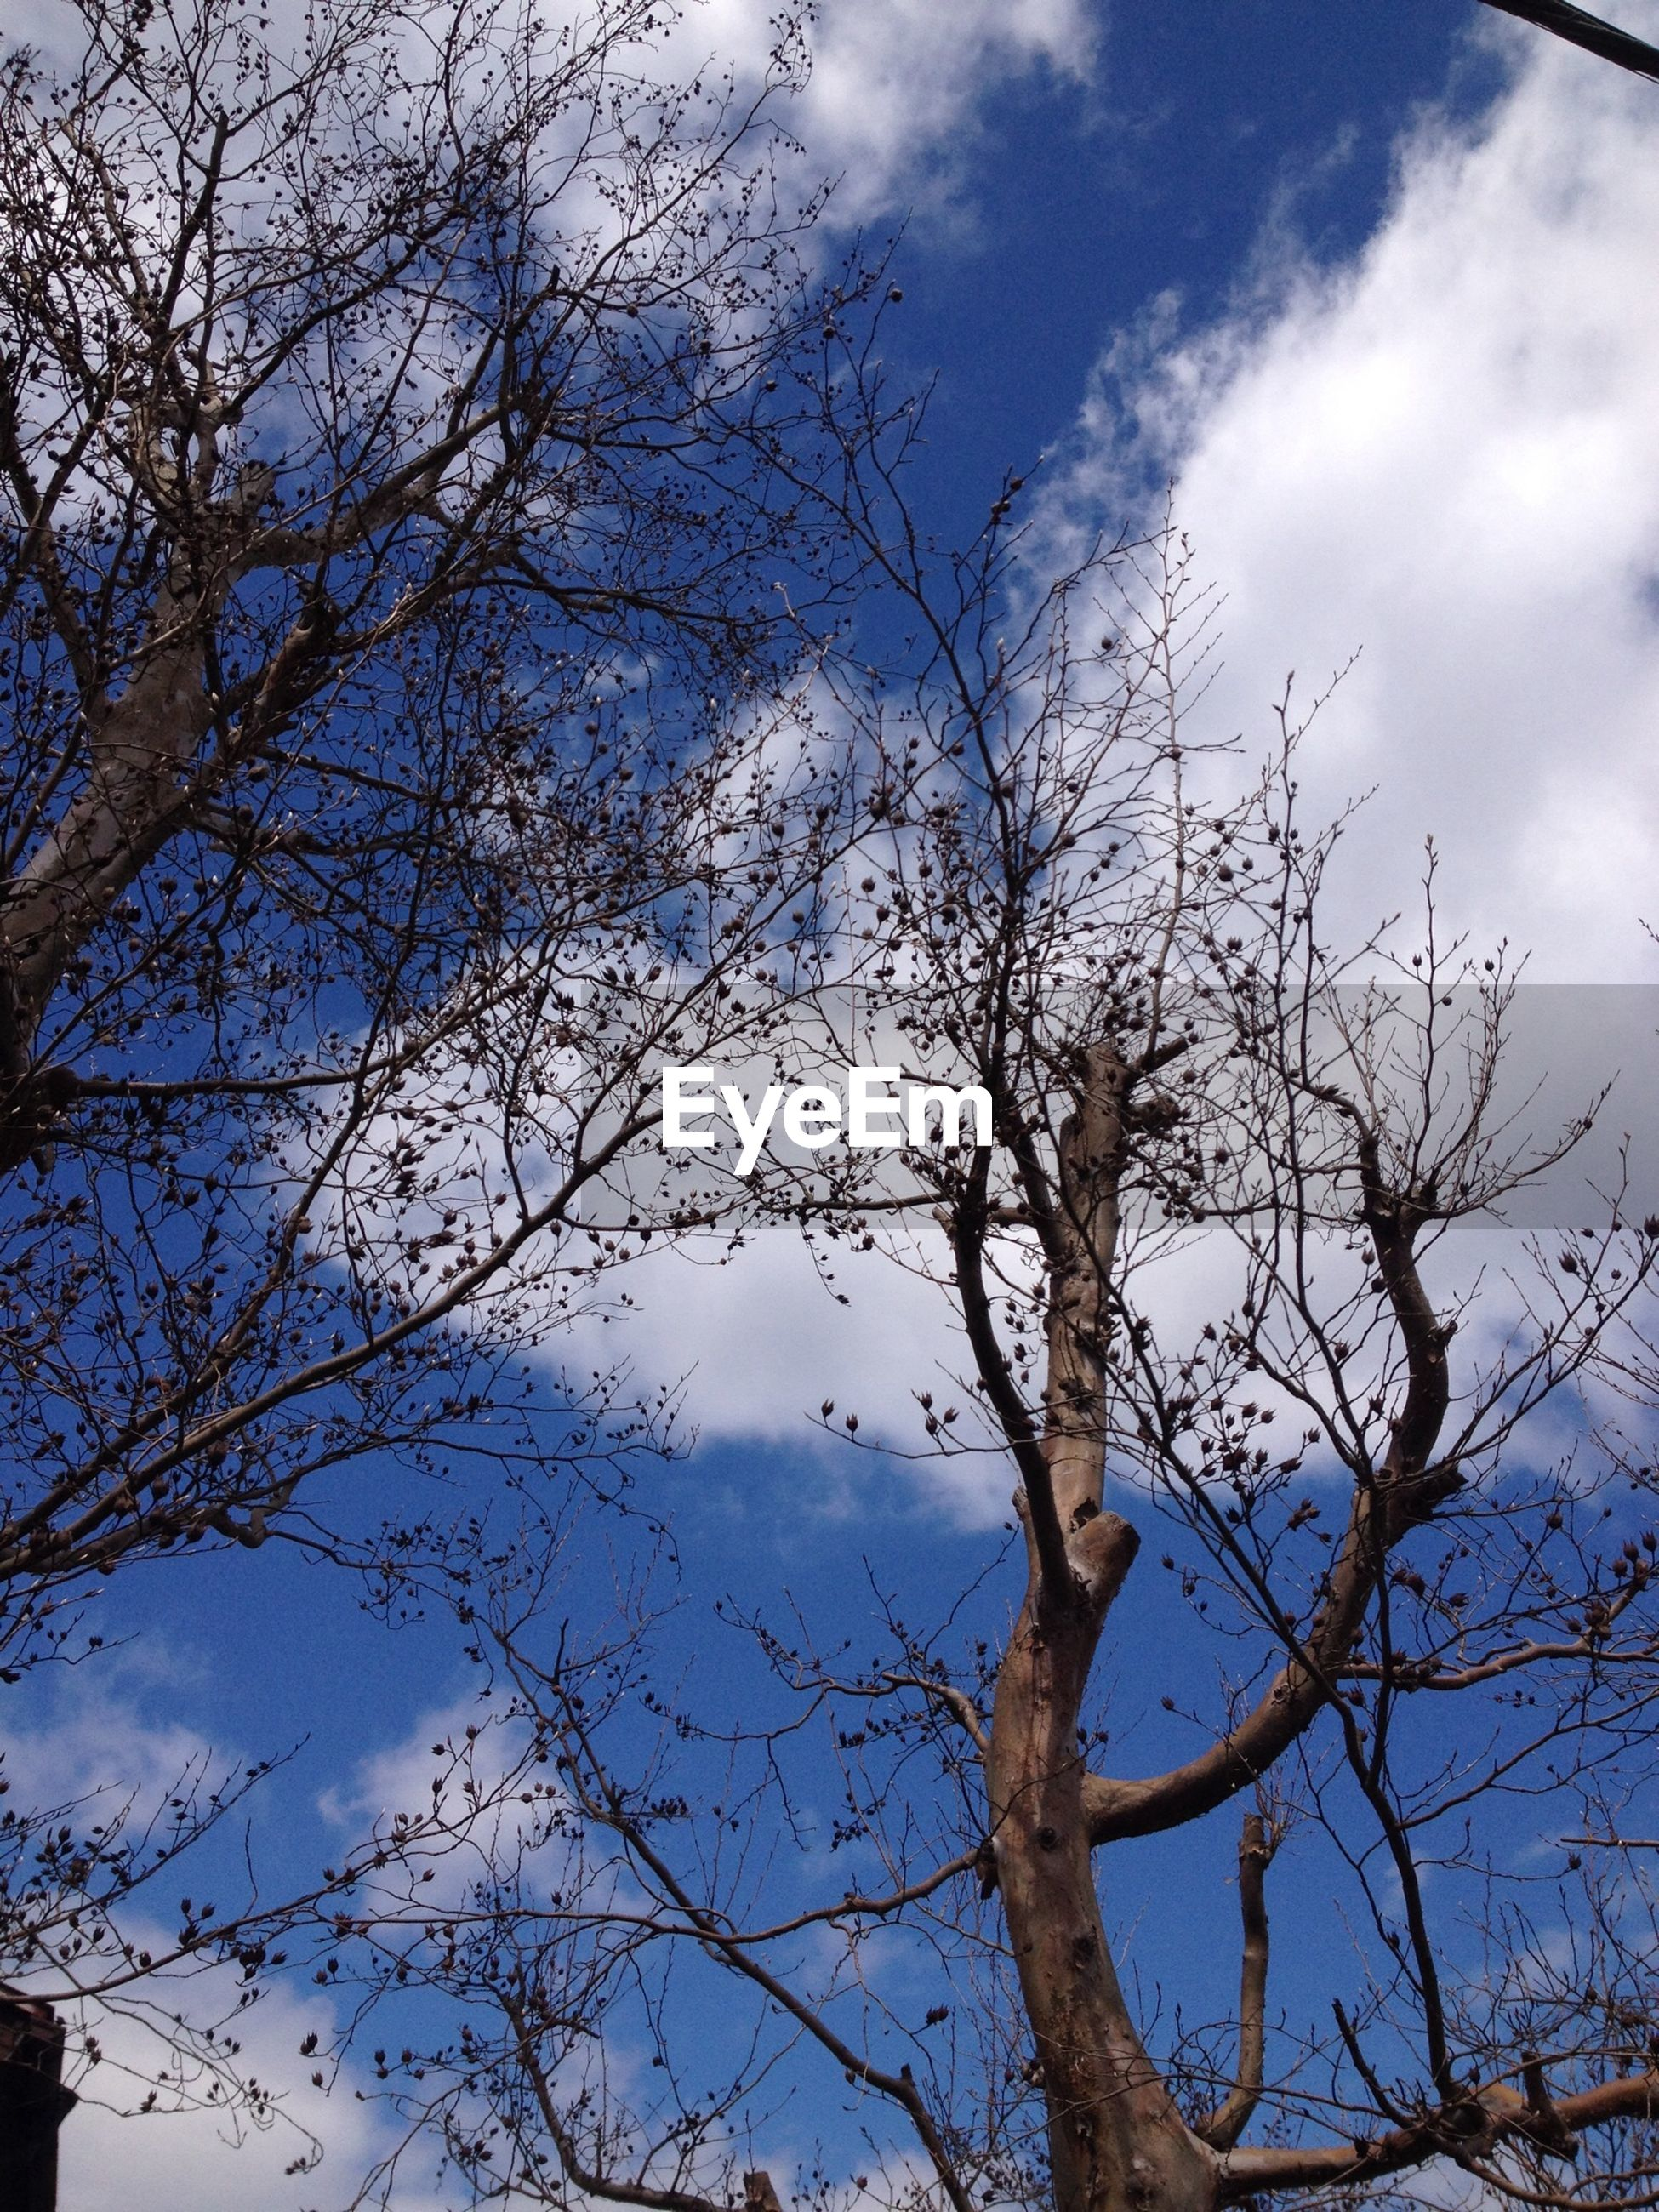 low angle view, tree, branch, bare tree, sky, cloud - sky, nature, tranquility, beauty in nature, blue, cloud, scenics, cloudy, outdoors, day, growth, no people, silhouette, tranquil scene, high section